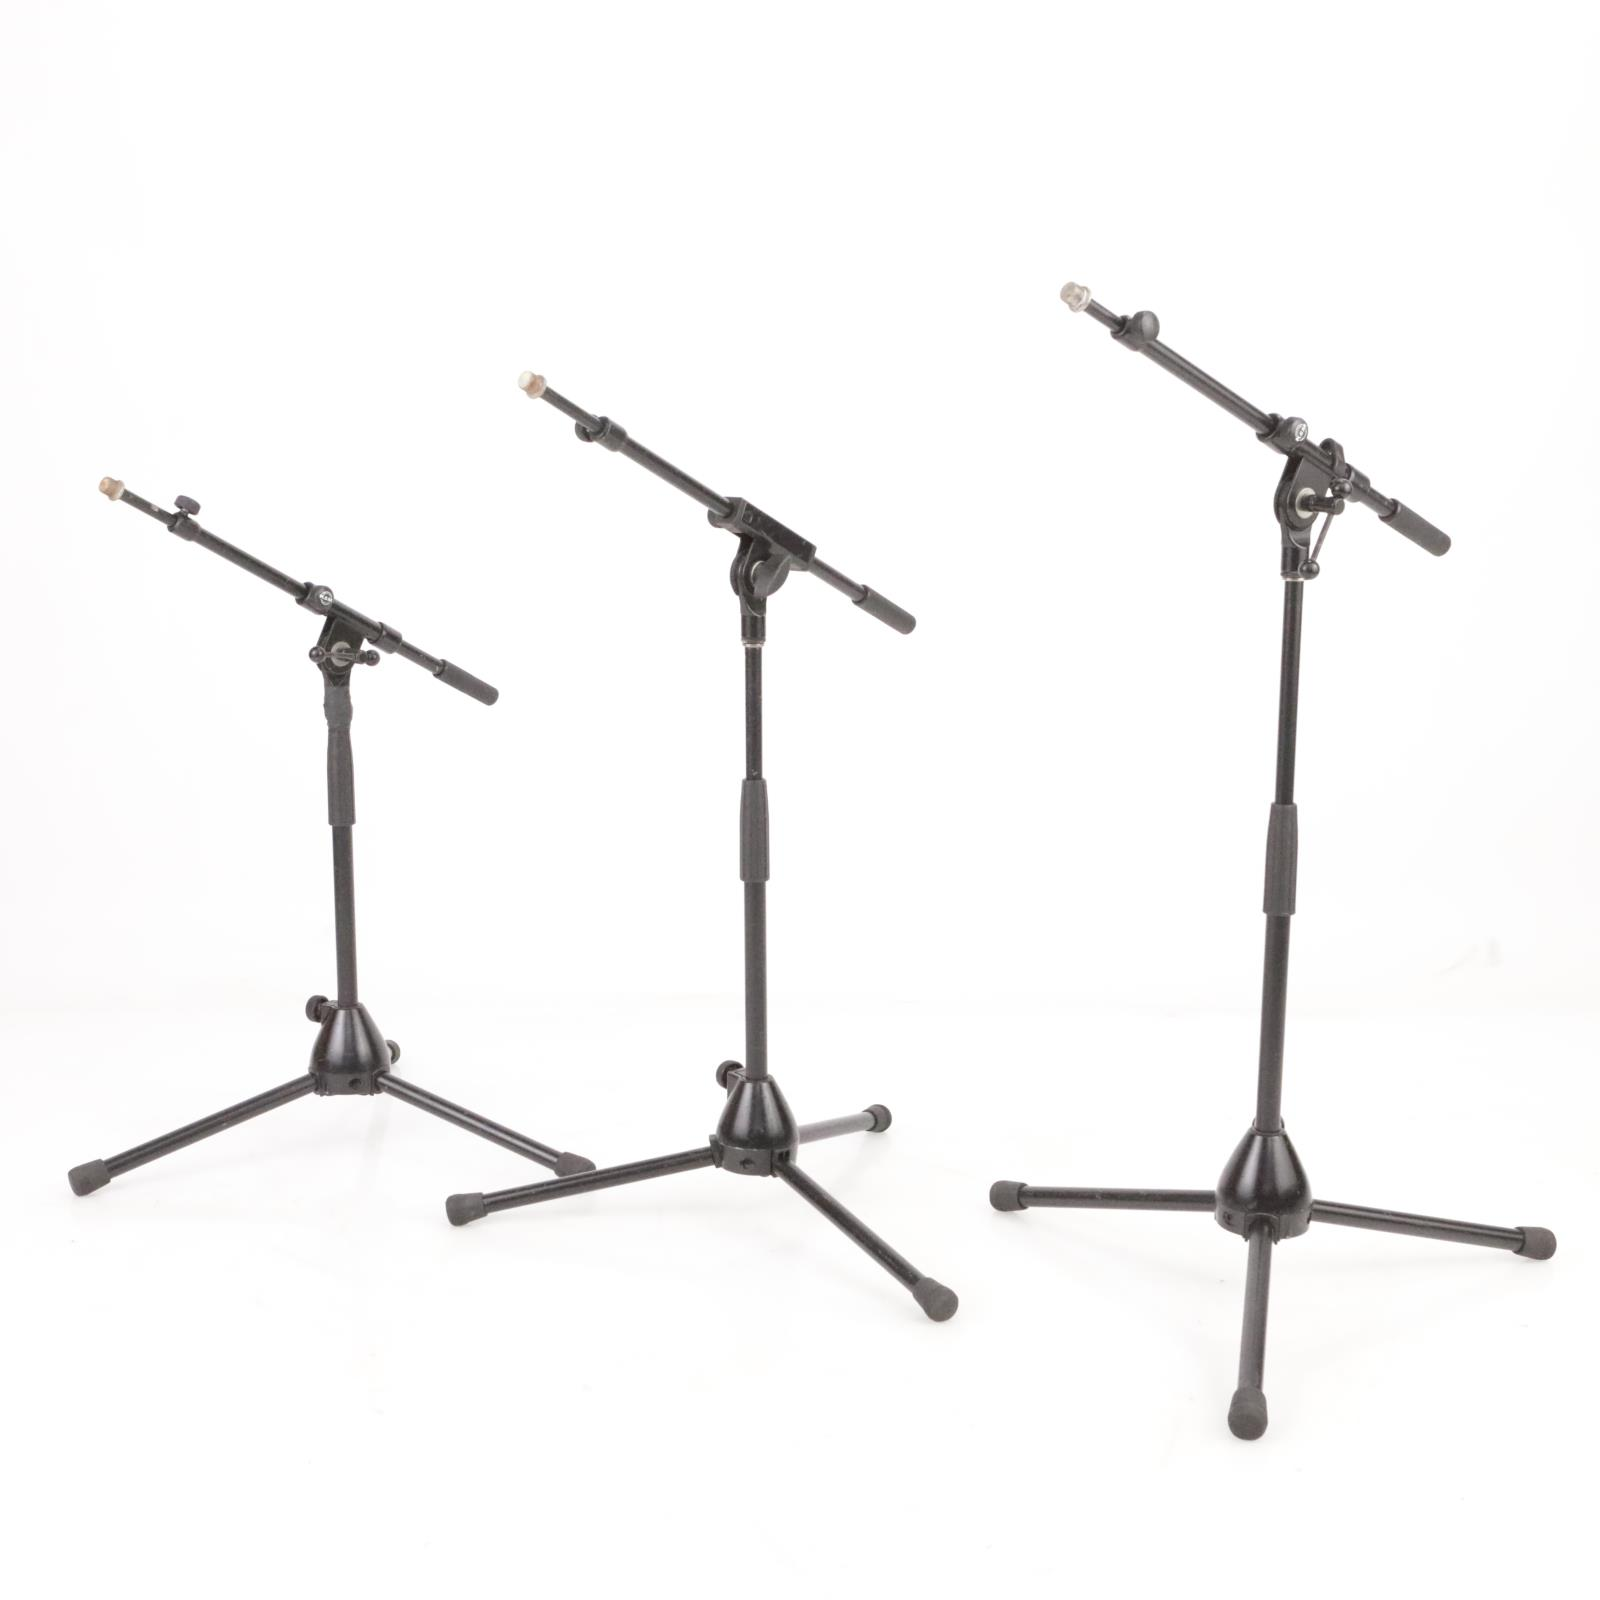 3 K&M Short Low Mic Microphone Studio Booms Stands w/ 3 Extra Atlas Booms #39467